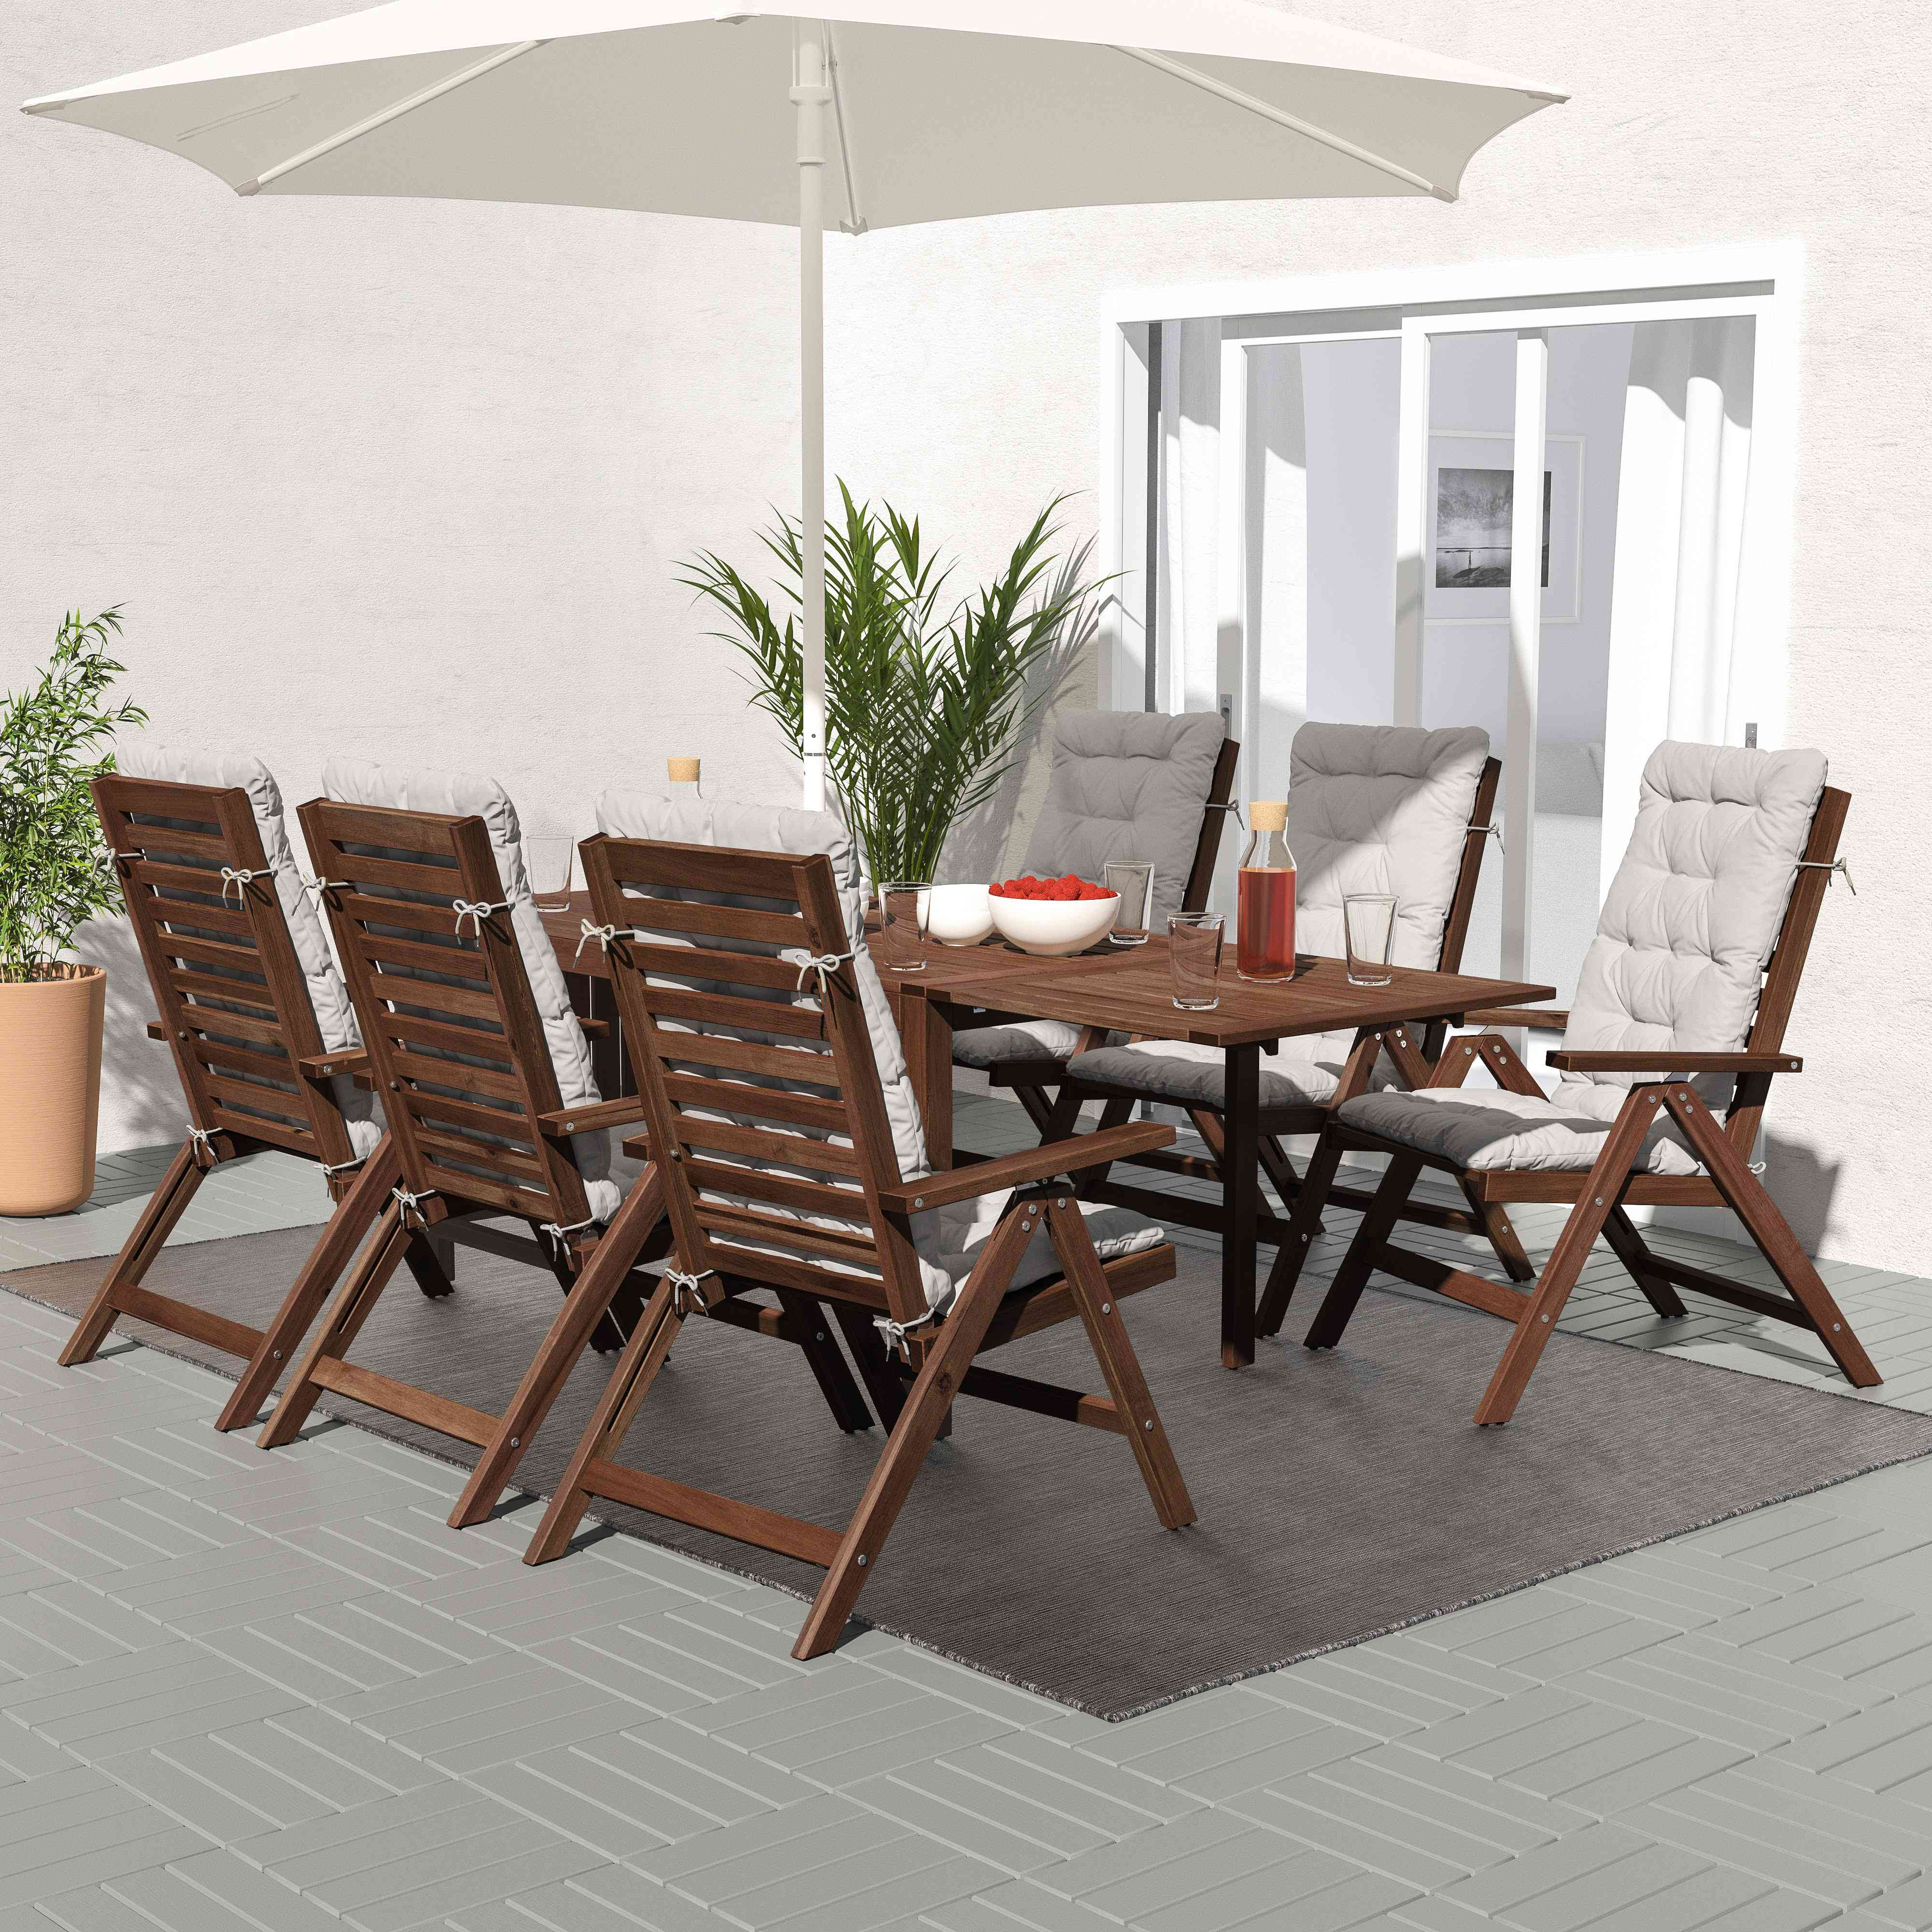 IKEA APPLARO Outdoor Table and Chairs